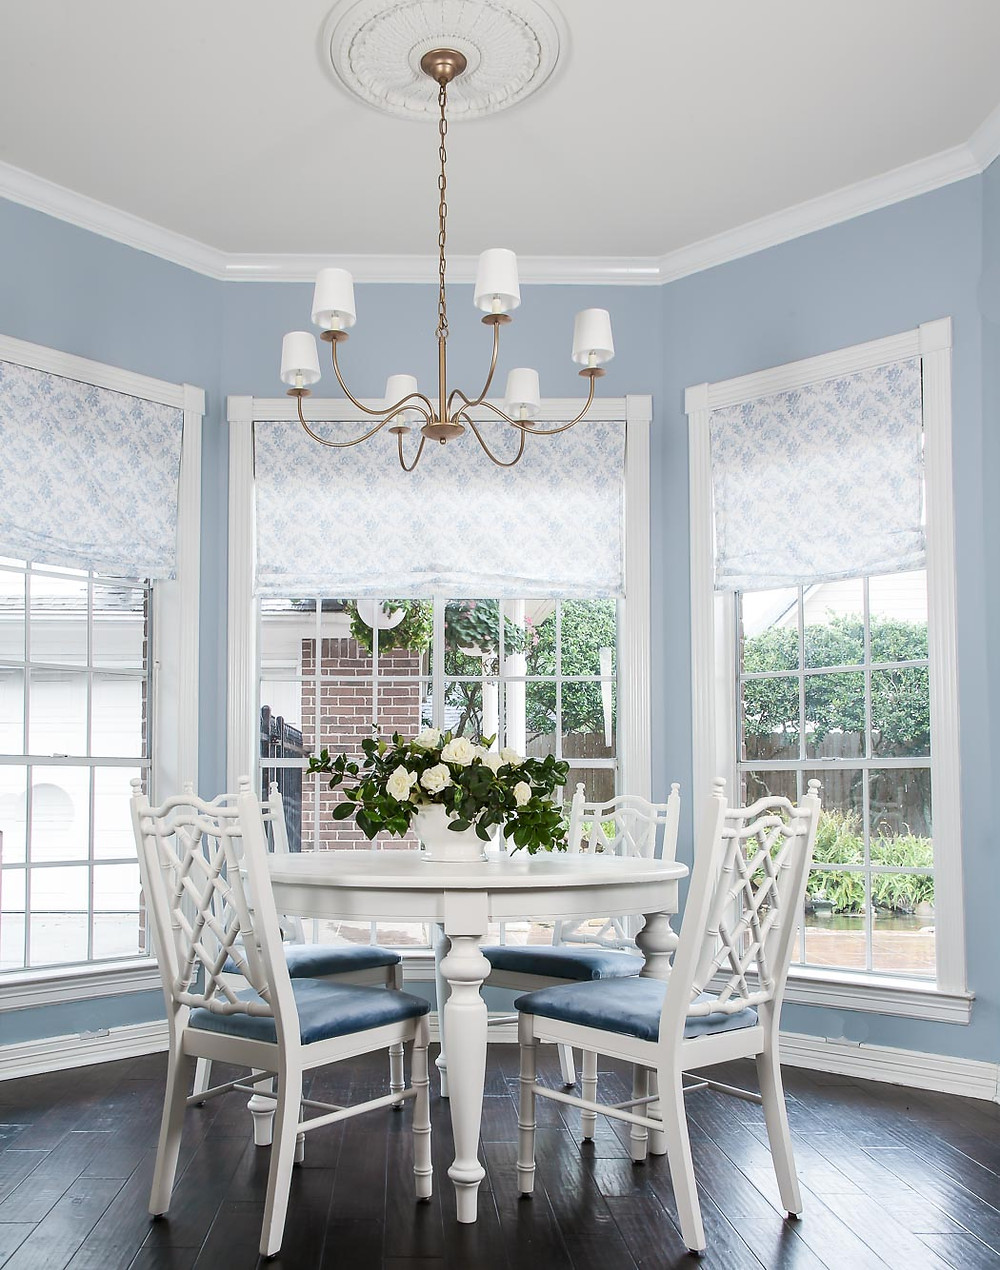 farrow and ball parma gray, blue breakfast nook